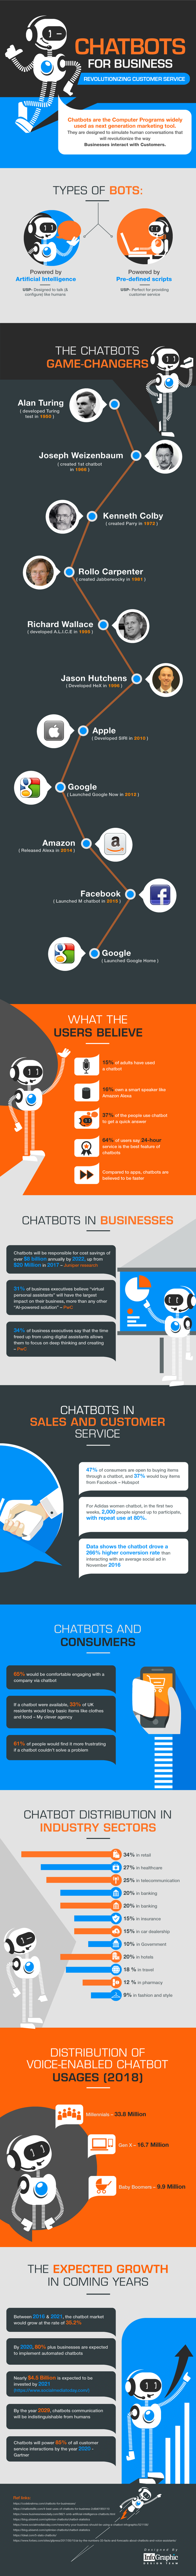 chatbots-for-business